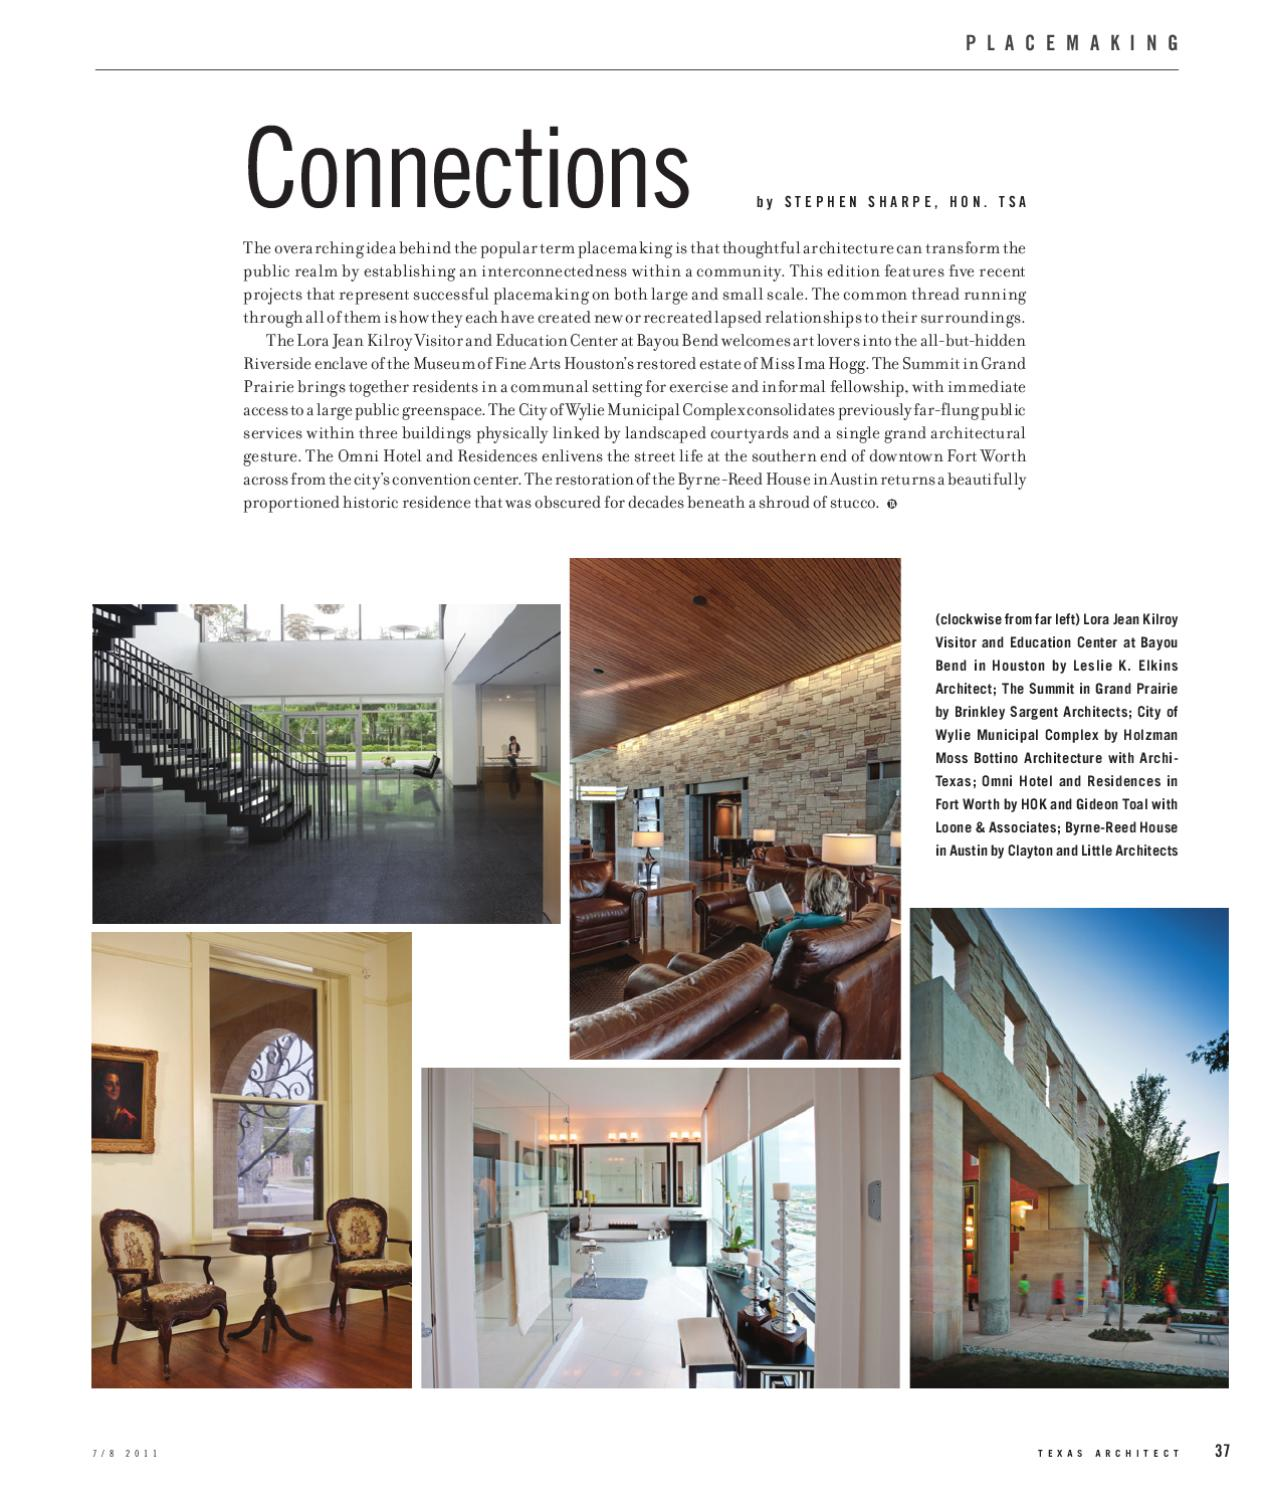 Texas Architect July Aug 2011 Placemaking By Texas Society Of Architects Issuu